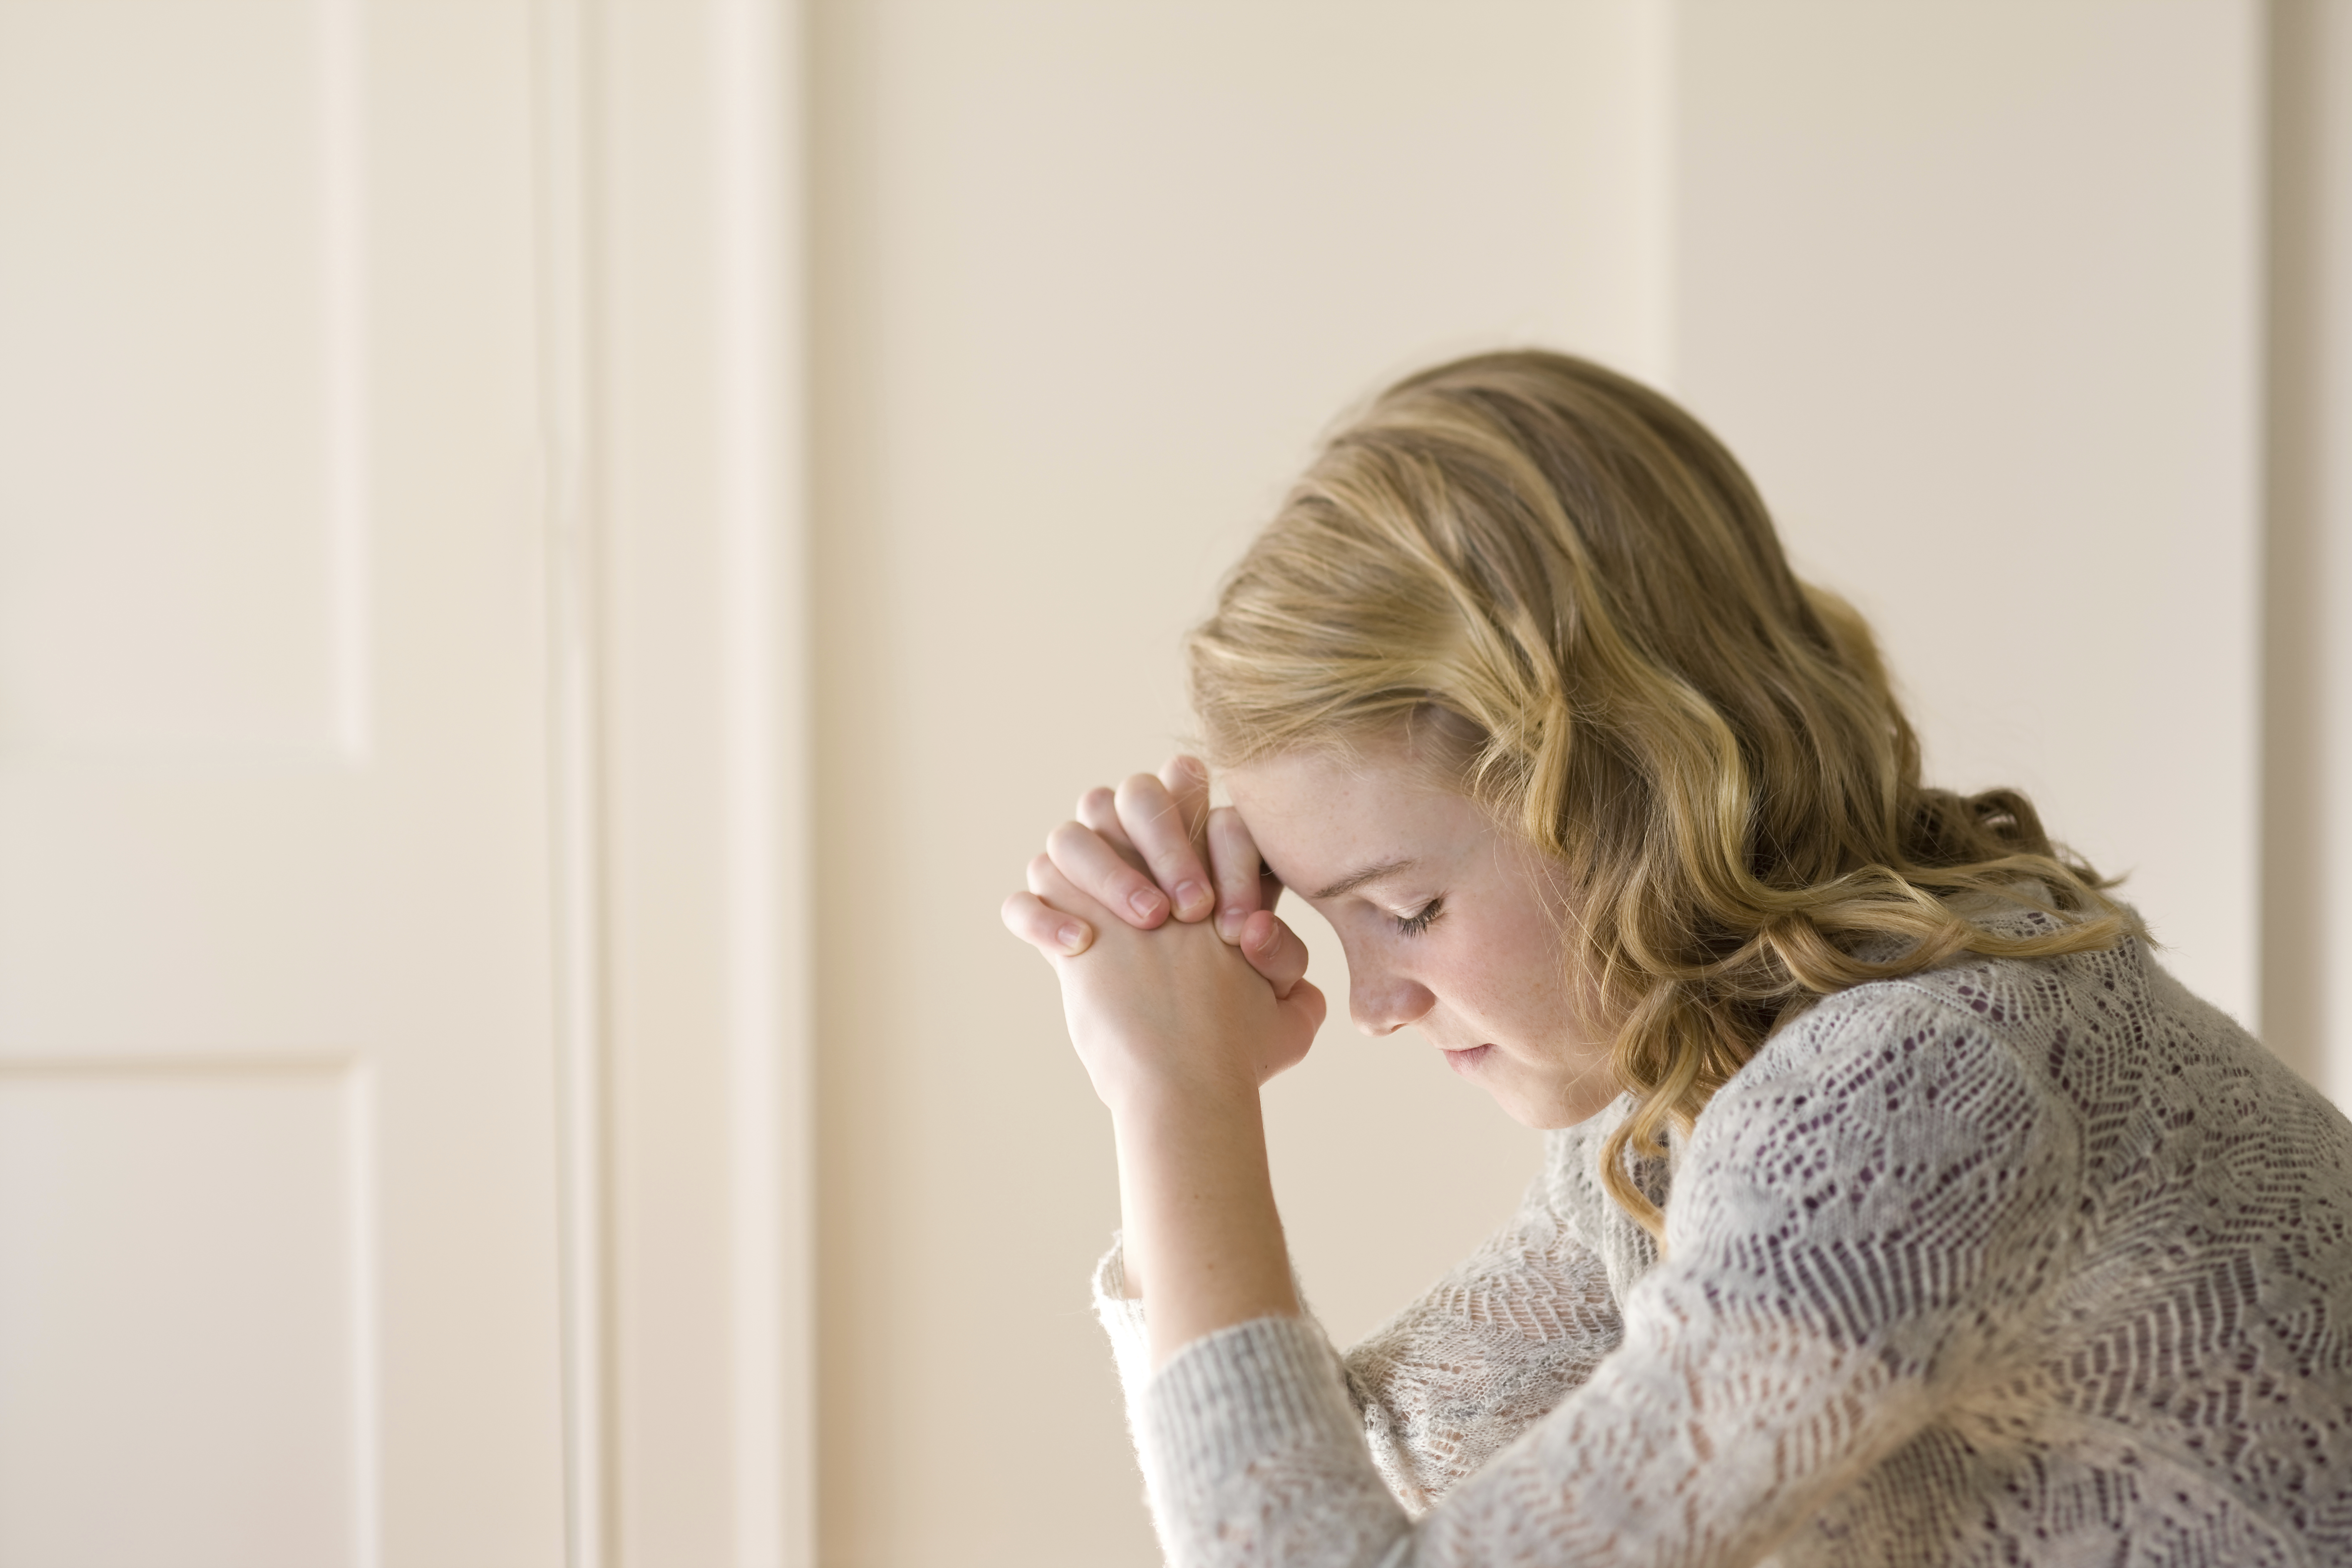 A young woman kneels in prayer.